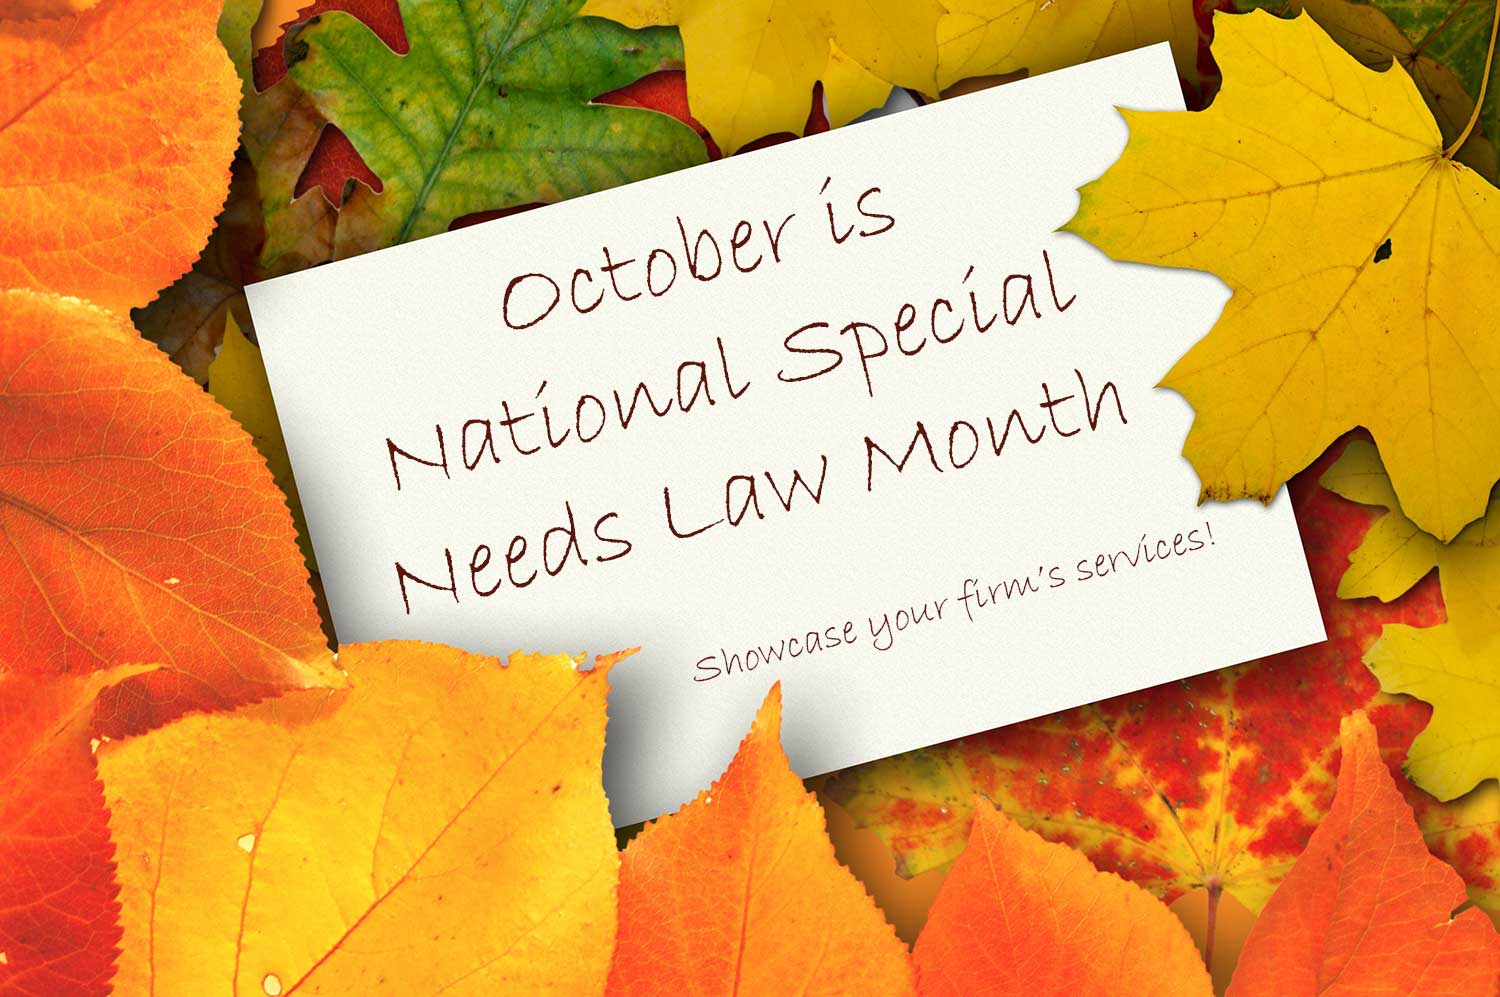 October-is-National-Special-Needs-Law-Month.jpg